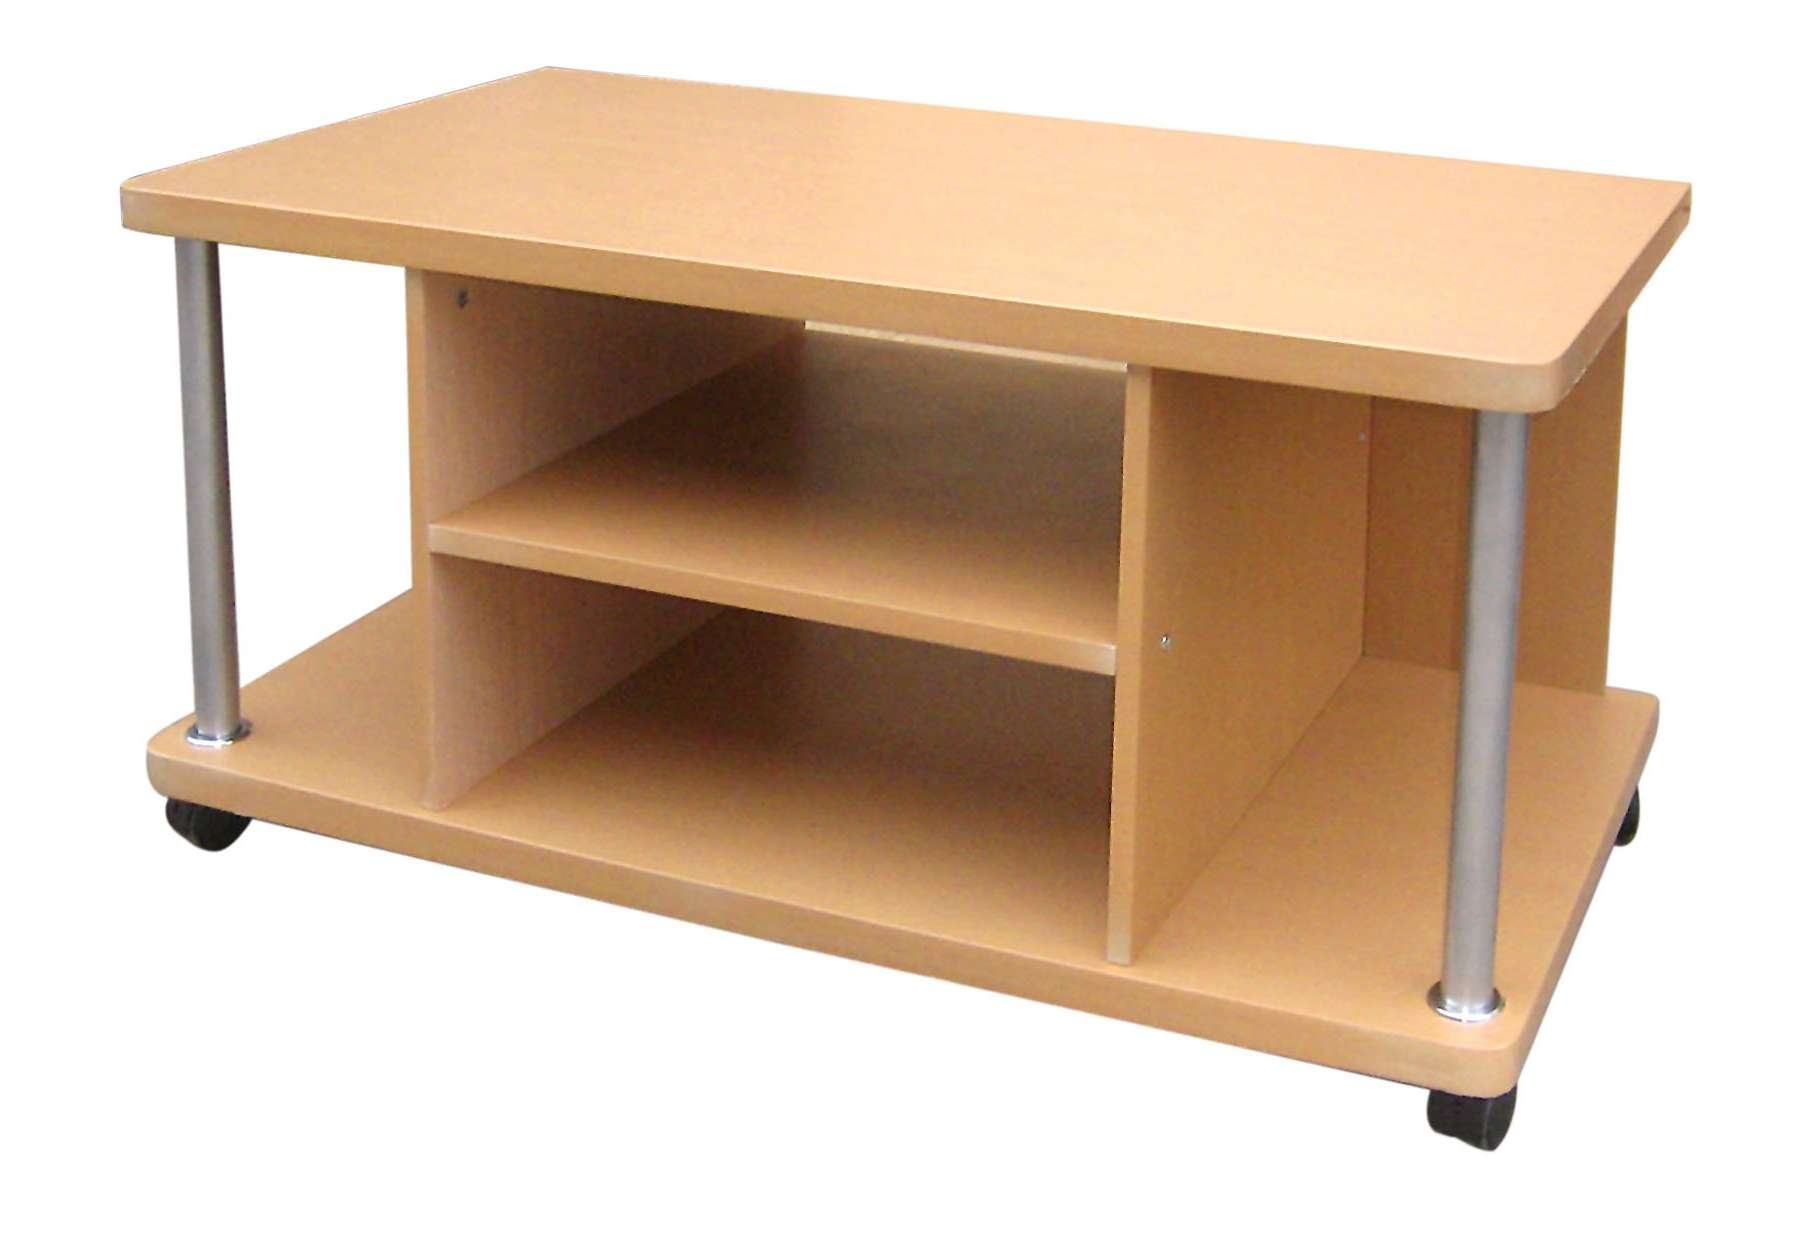 Tv Stand With Wheels 15 Best Collection Of Wooden Tv Stands With Wheels